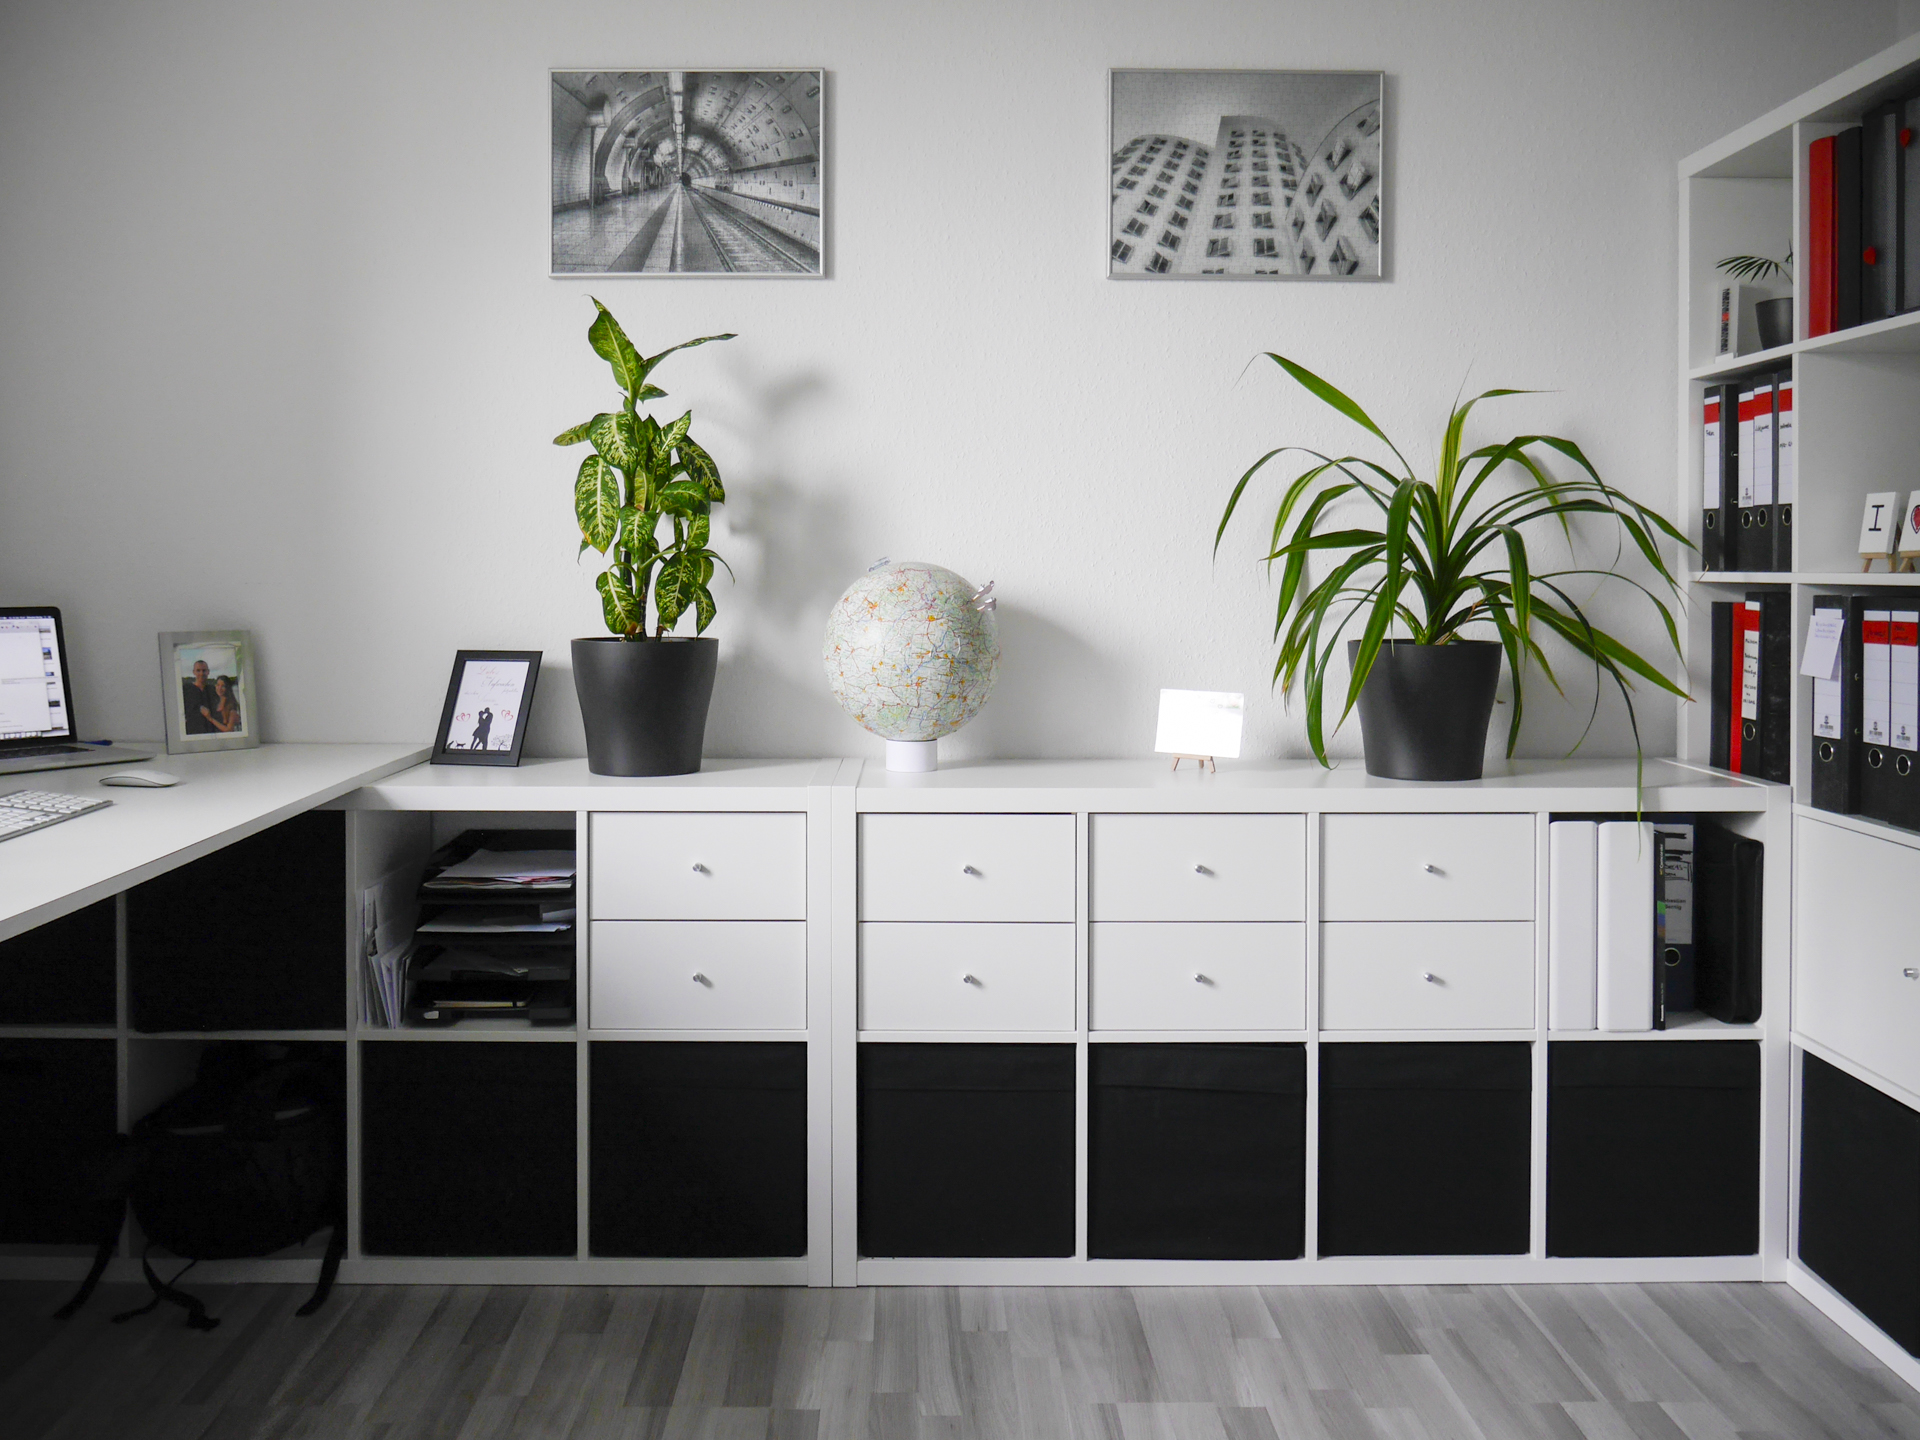 ikea regal einrichten inspiration f r die gestaltung der besten r ume. Black Bedroom Furniture Sets. Home Design Ideas